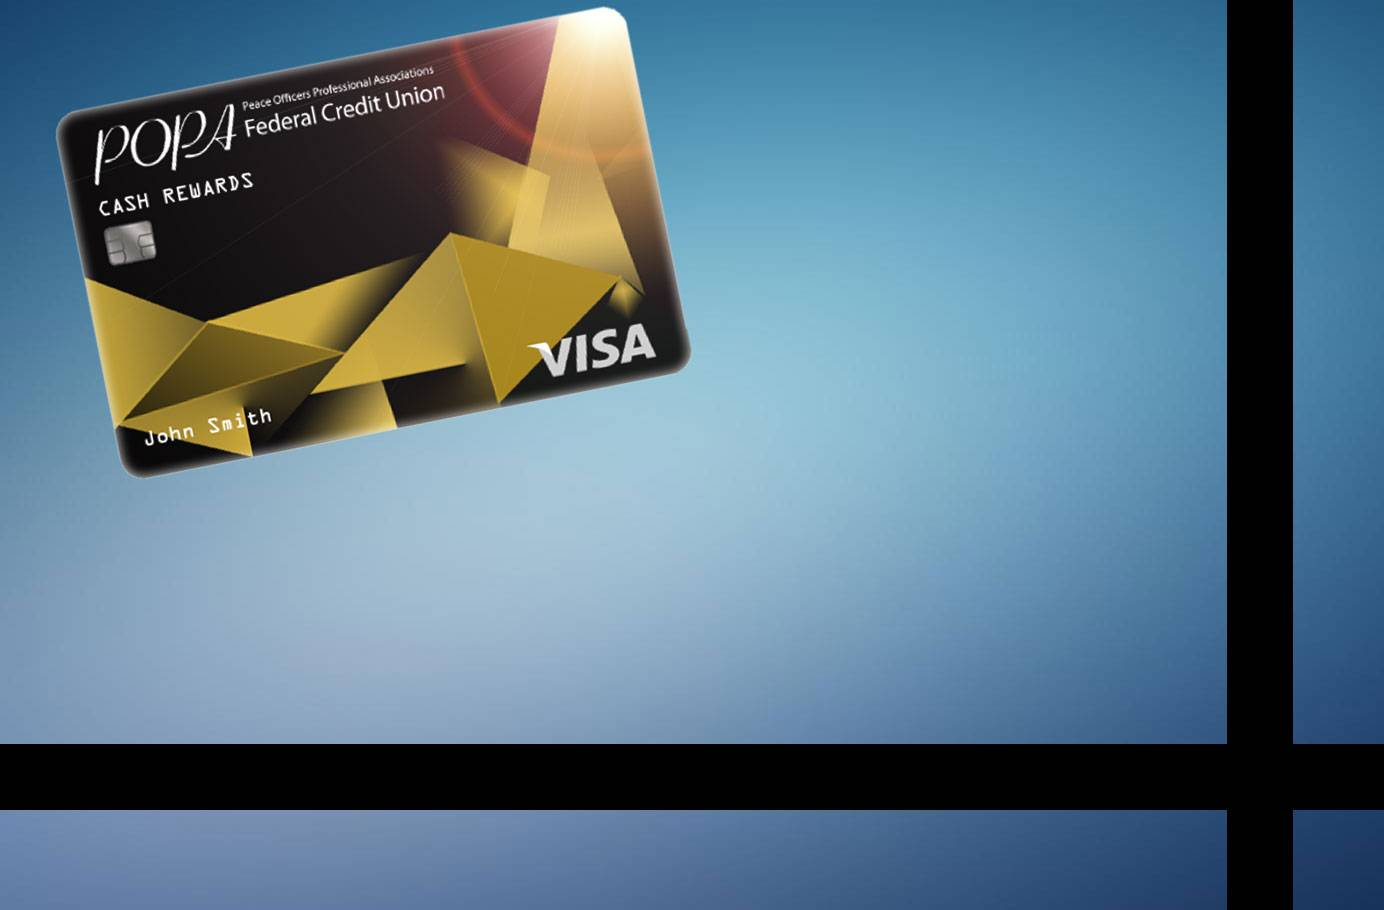 New Cash Rewards VISA